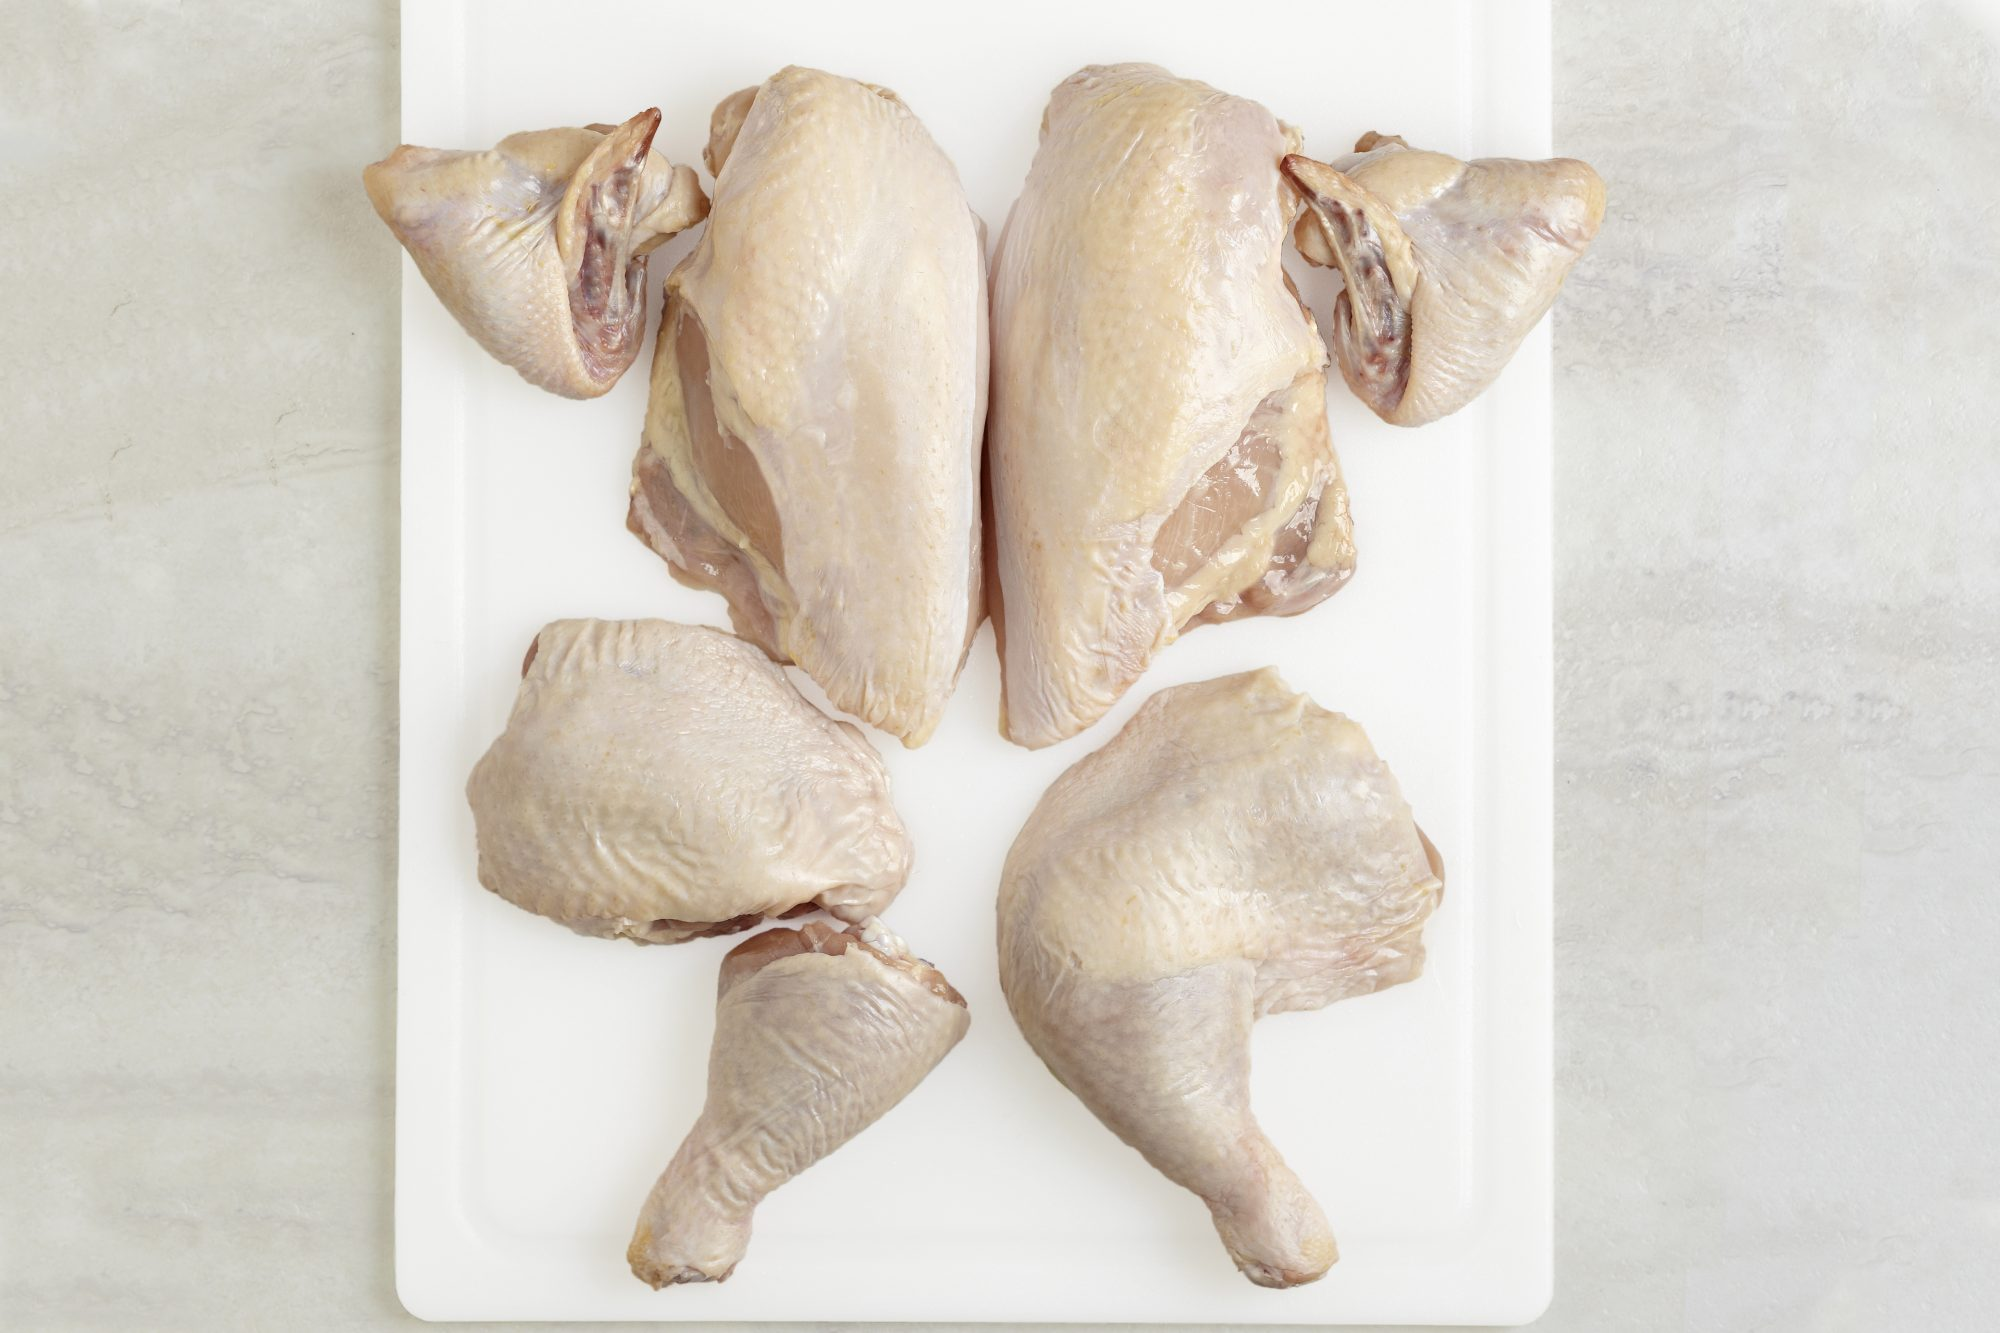 whole chicken broken down into separate parts: wings, breasts, thighs, drumsticks